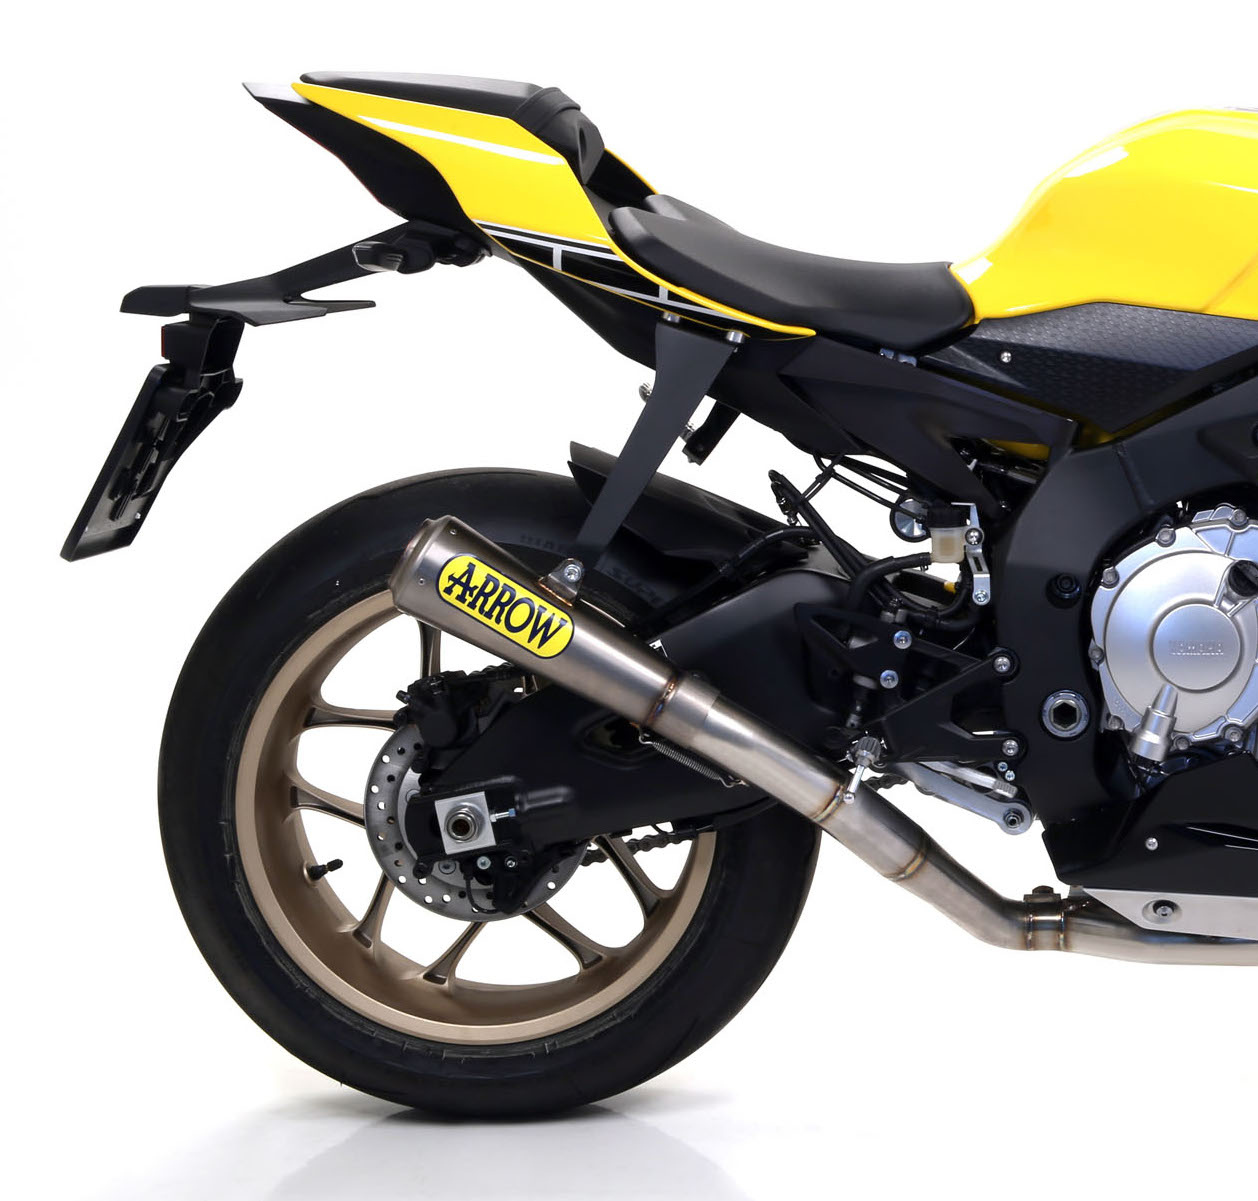 Competition Pro Race EVO Full System Exhaust by Arrow